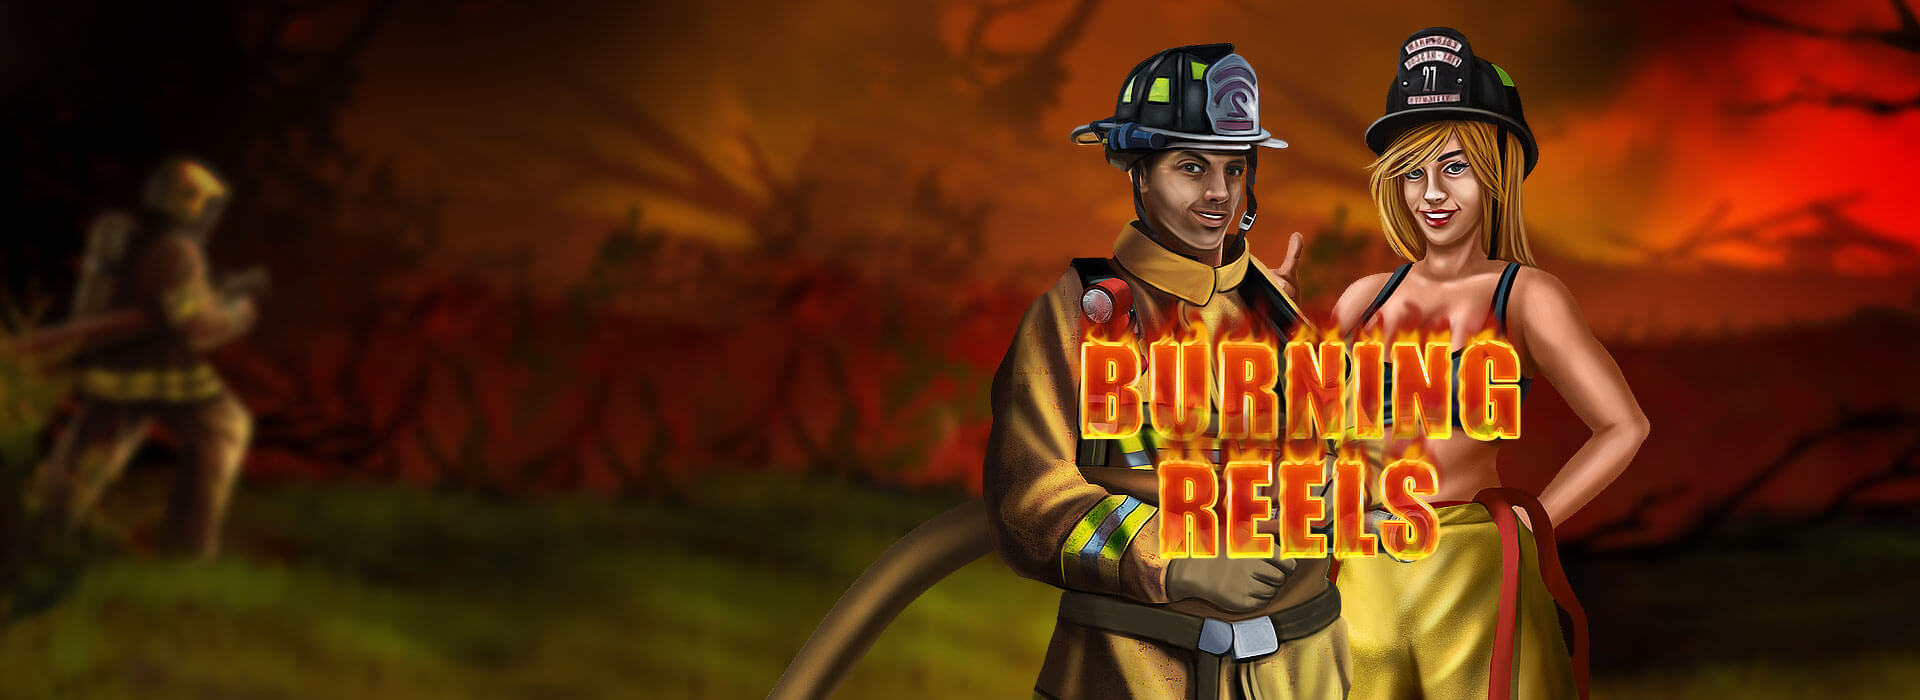 Burning Reels is a game on fire!